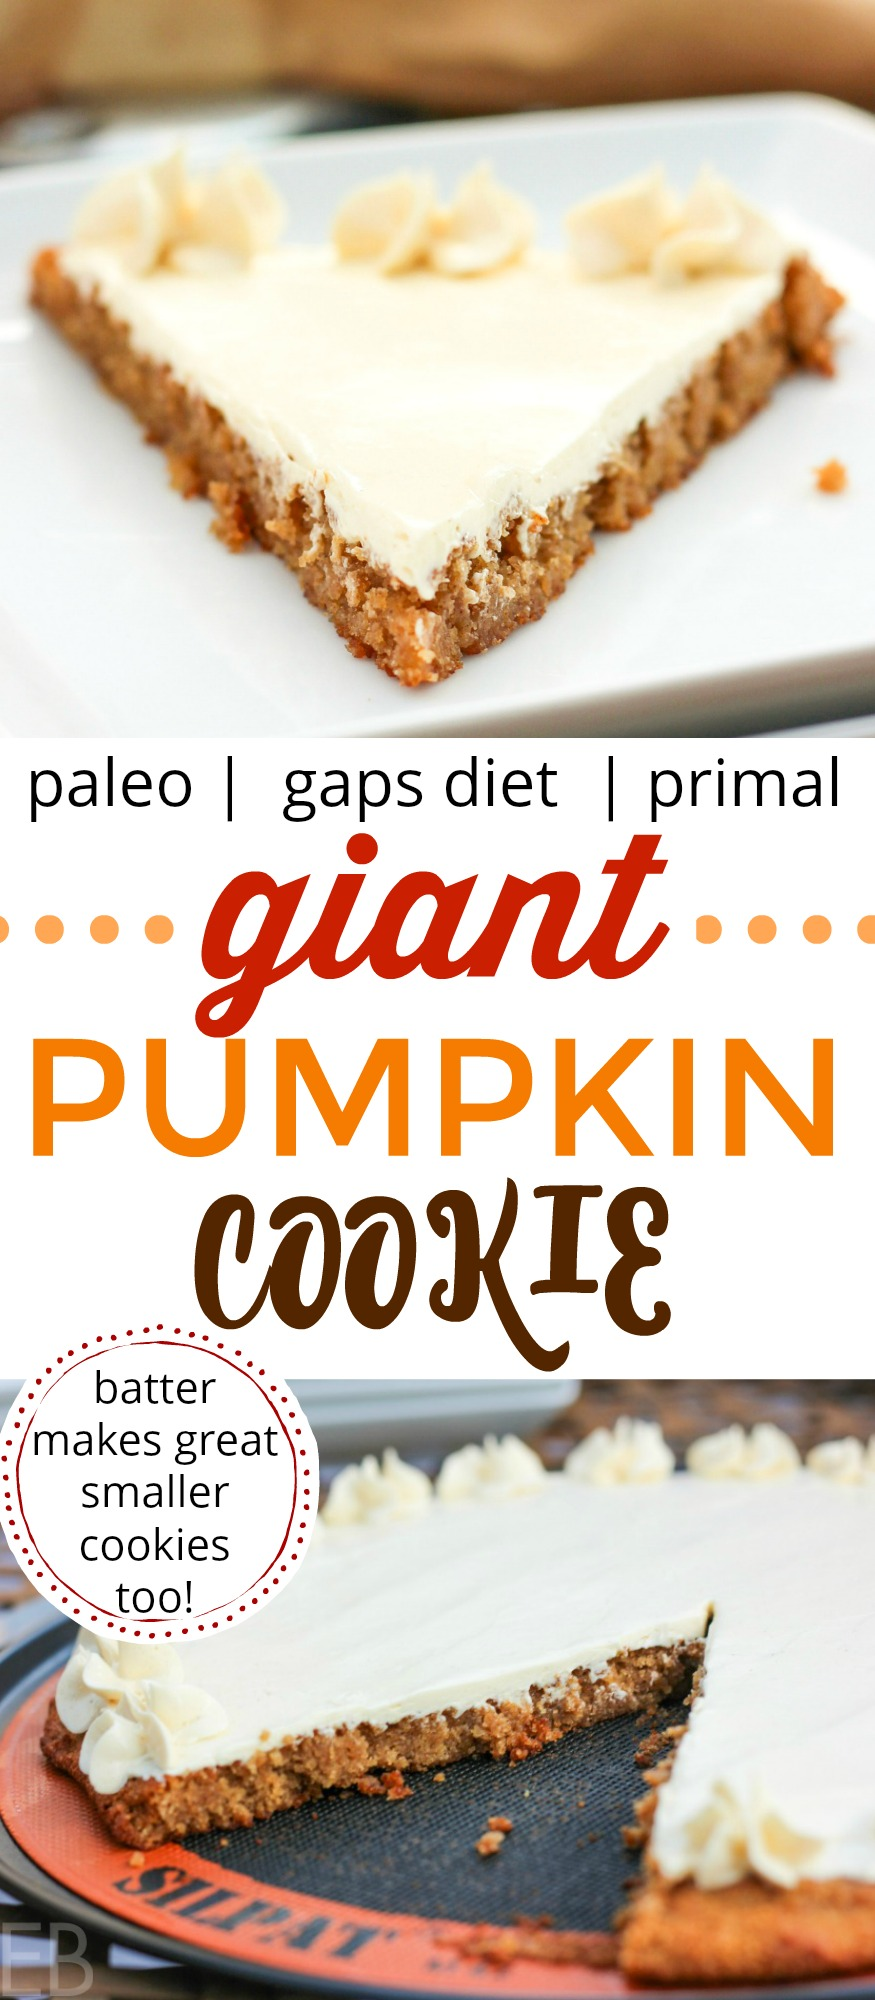 LOVE this cookie recipe!!! Paleo/Primal & GAPS Diet-friendly~ Giant Pumpkin Cookie with Buttercream Frosting — can be made into normal size cookies too! You'll love this special treat and so will your family! Great ingredients, easy on digestion, yet sooo yummy!! #paleo #gapsdiet #pumpkin #cookie #dessert #grainfree #cake #frosting #buttercream